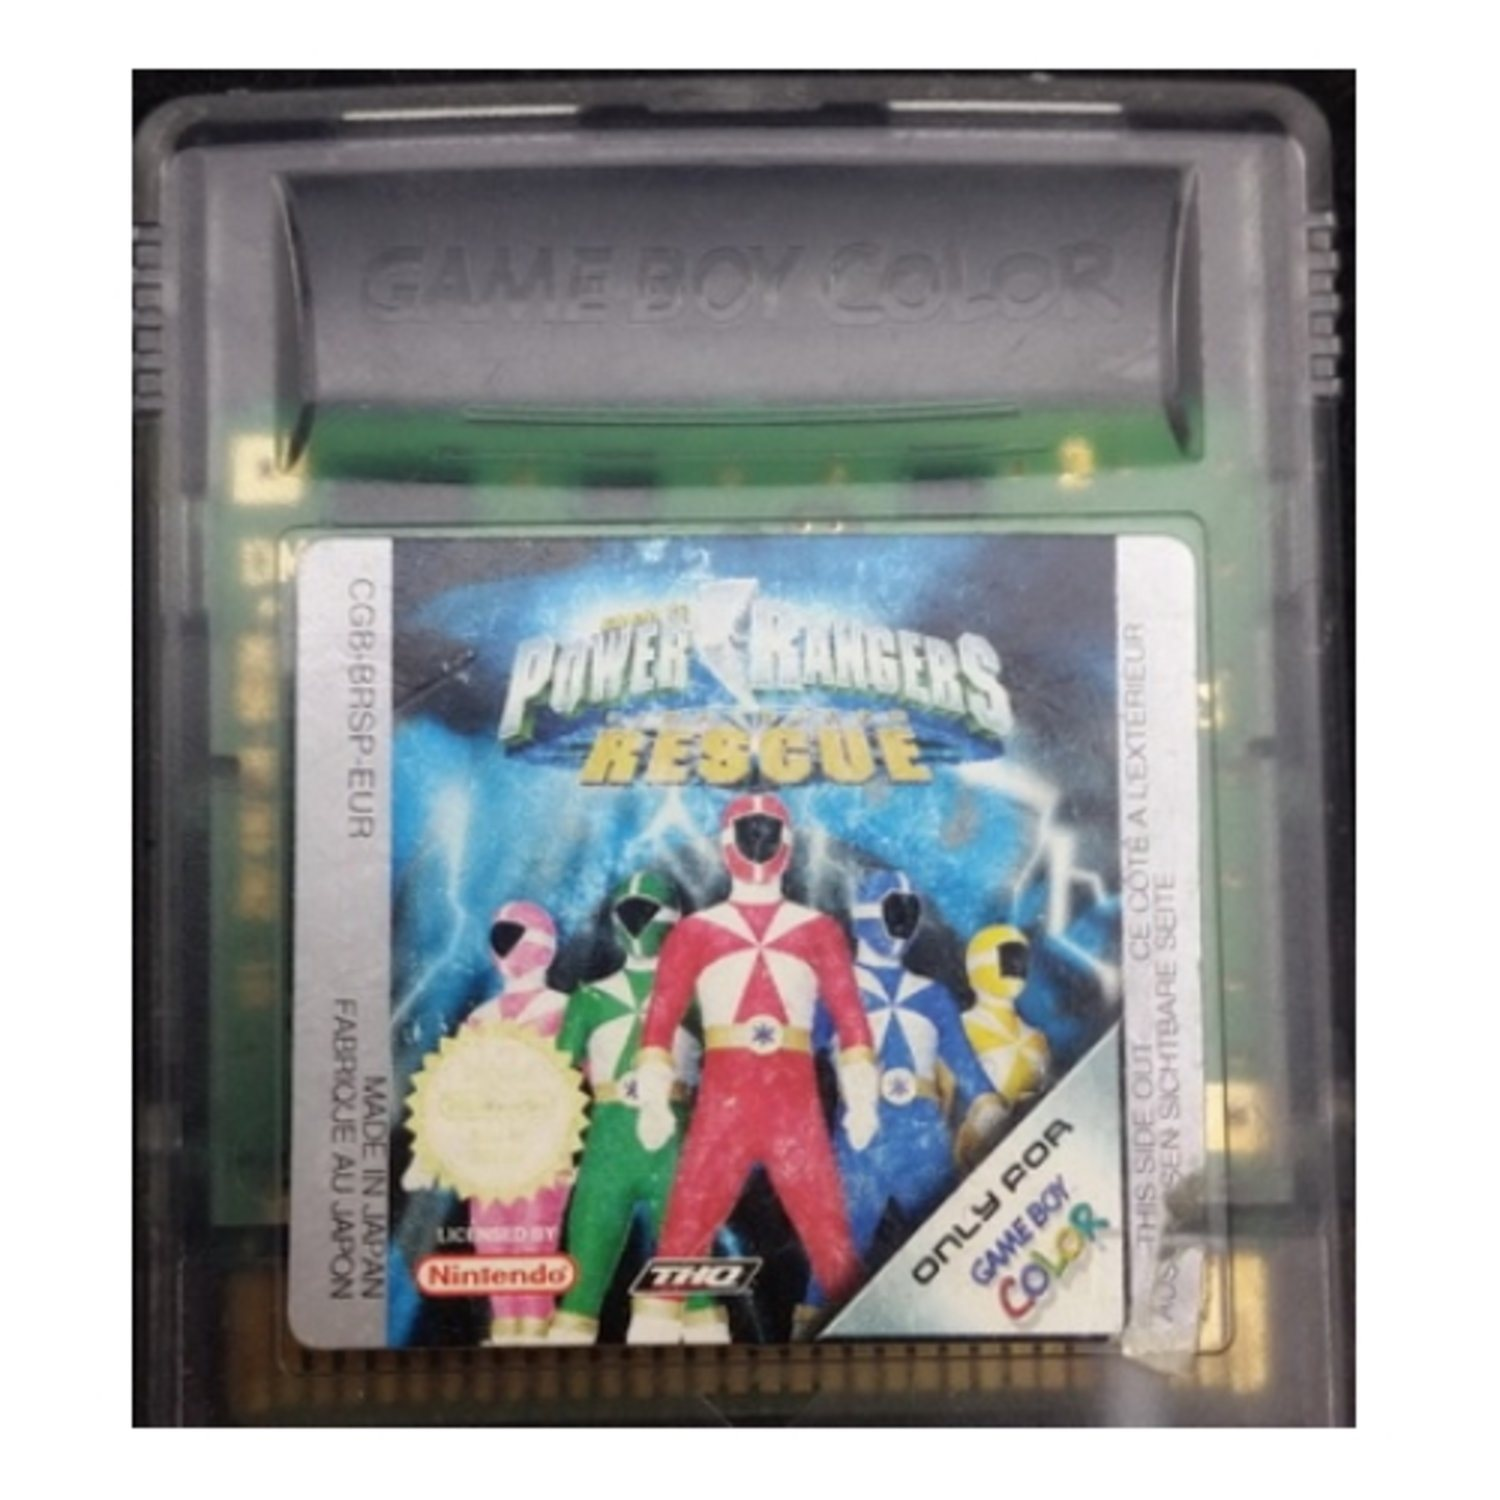 Power Rangers Lightspeed Rescue - Gameboy Color